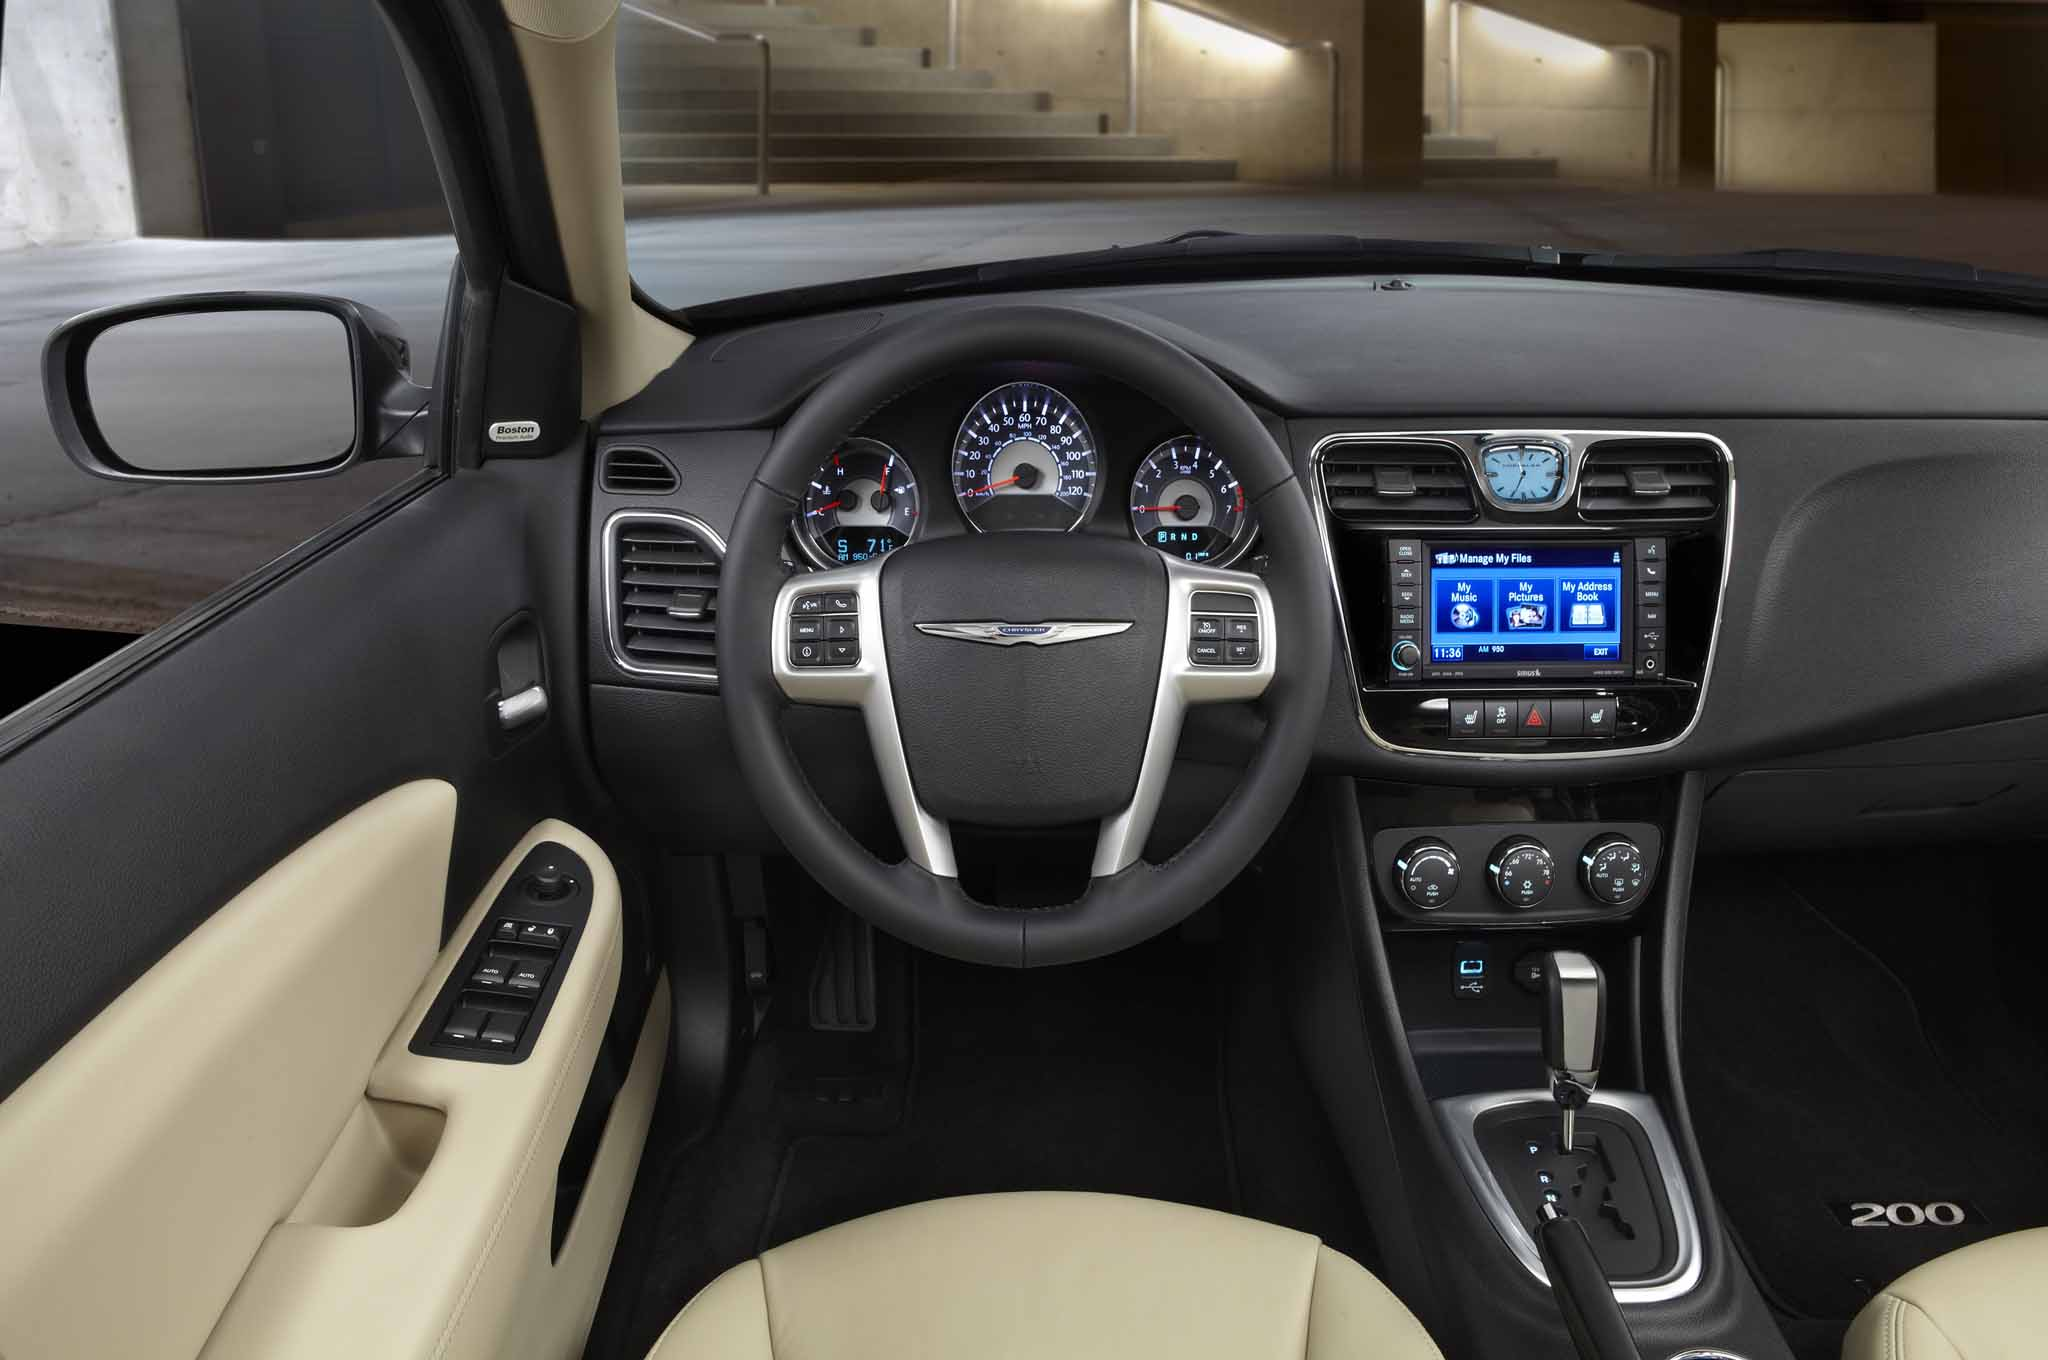 2013 Chrysler 200 Interior Driver Side Tan report chrysler 200 to become \